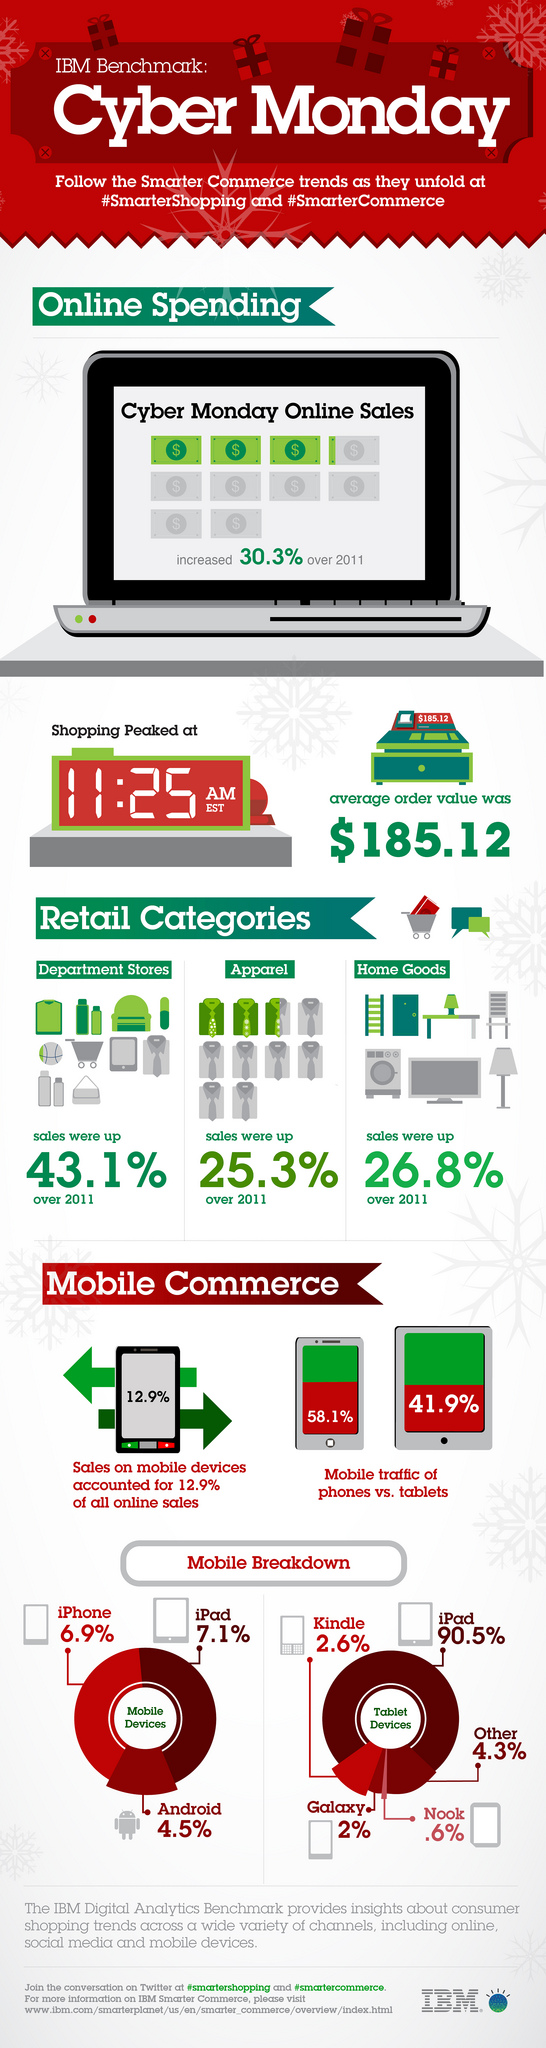 Cyber Monday 2012 Compared to Cyber Monday 2011: